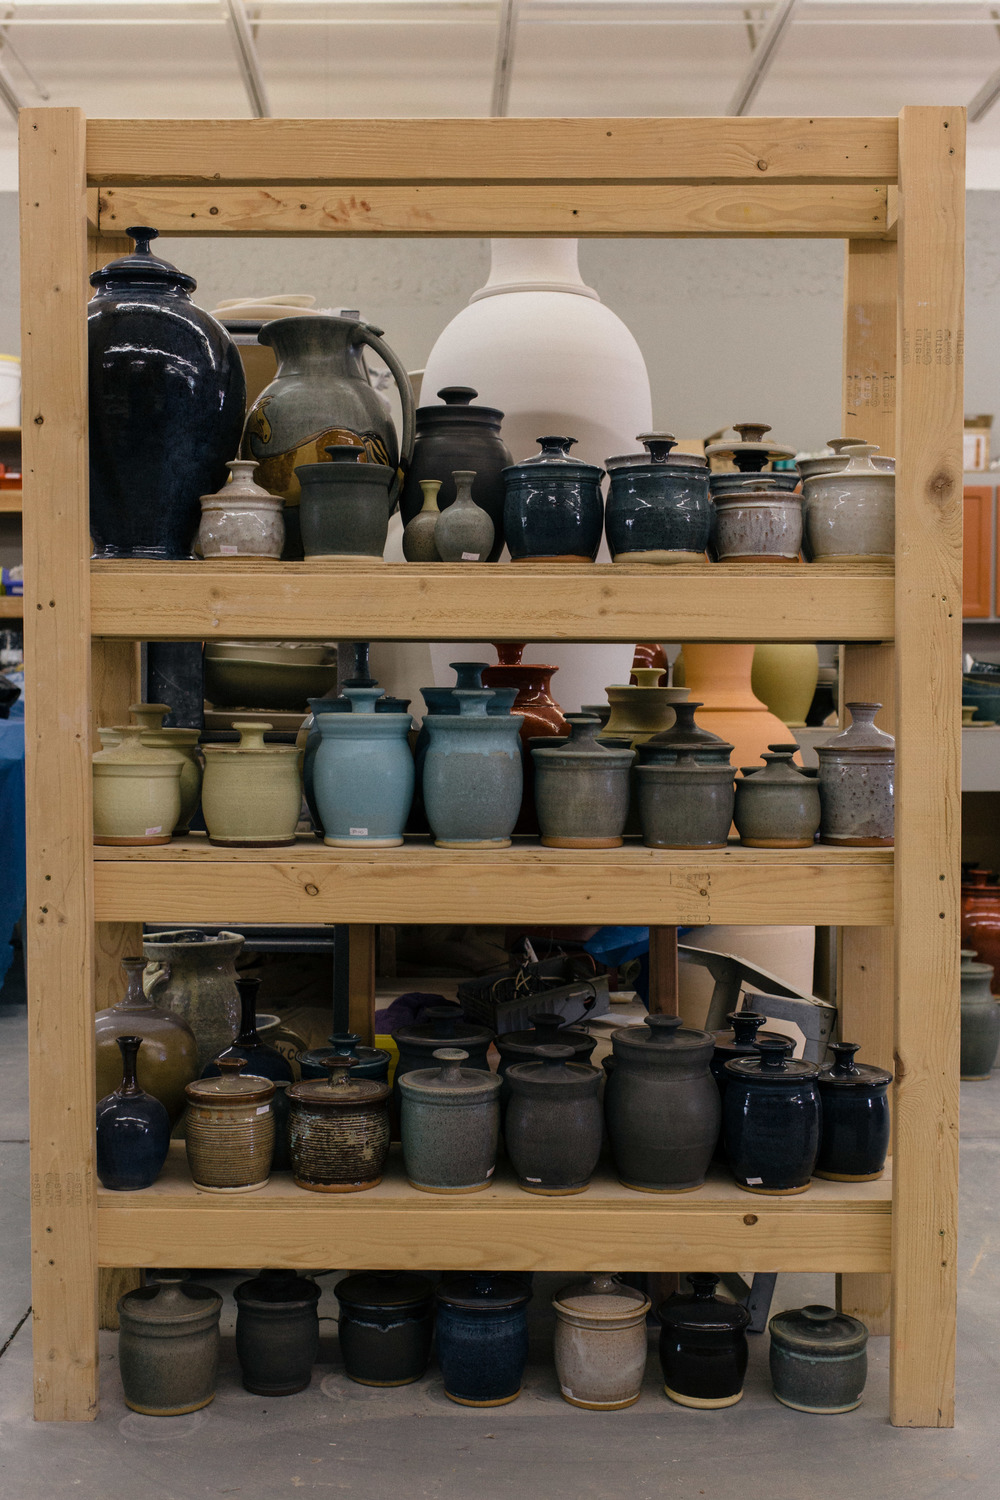 Pottery shelf St George UT Marketing